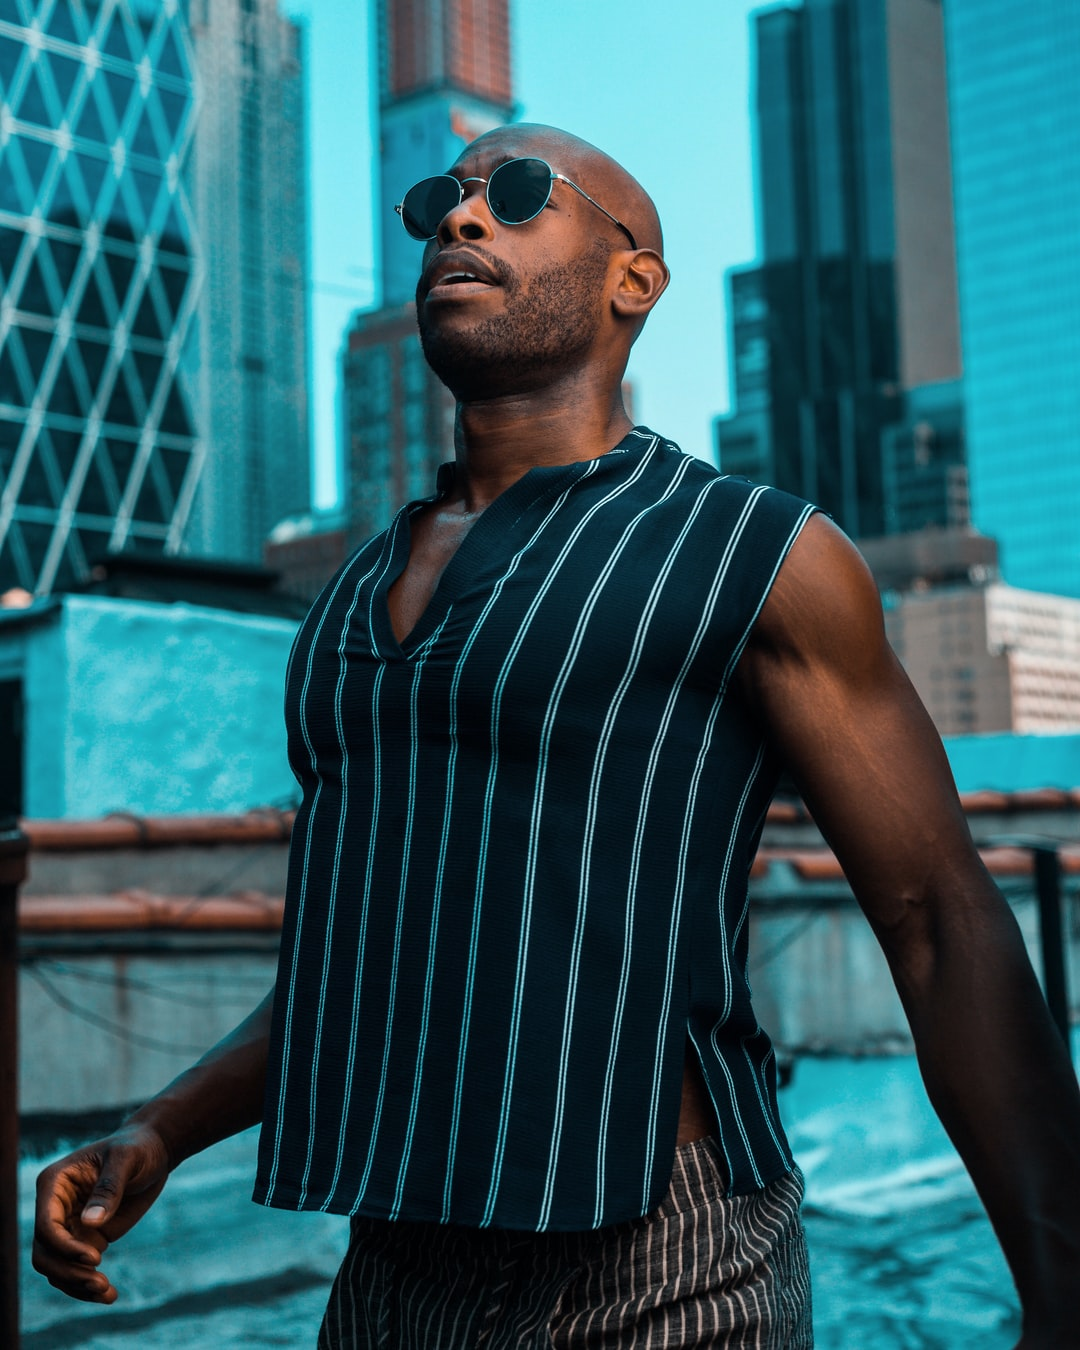 My bud, Donald, is a fellow Broadway actor. We captured this on my nyc rooftop and felt that it had such a beautiful energy.